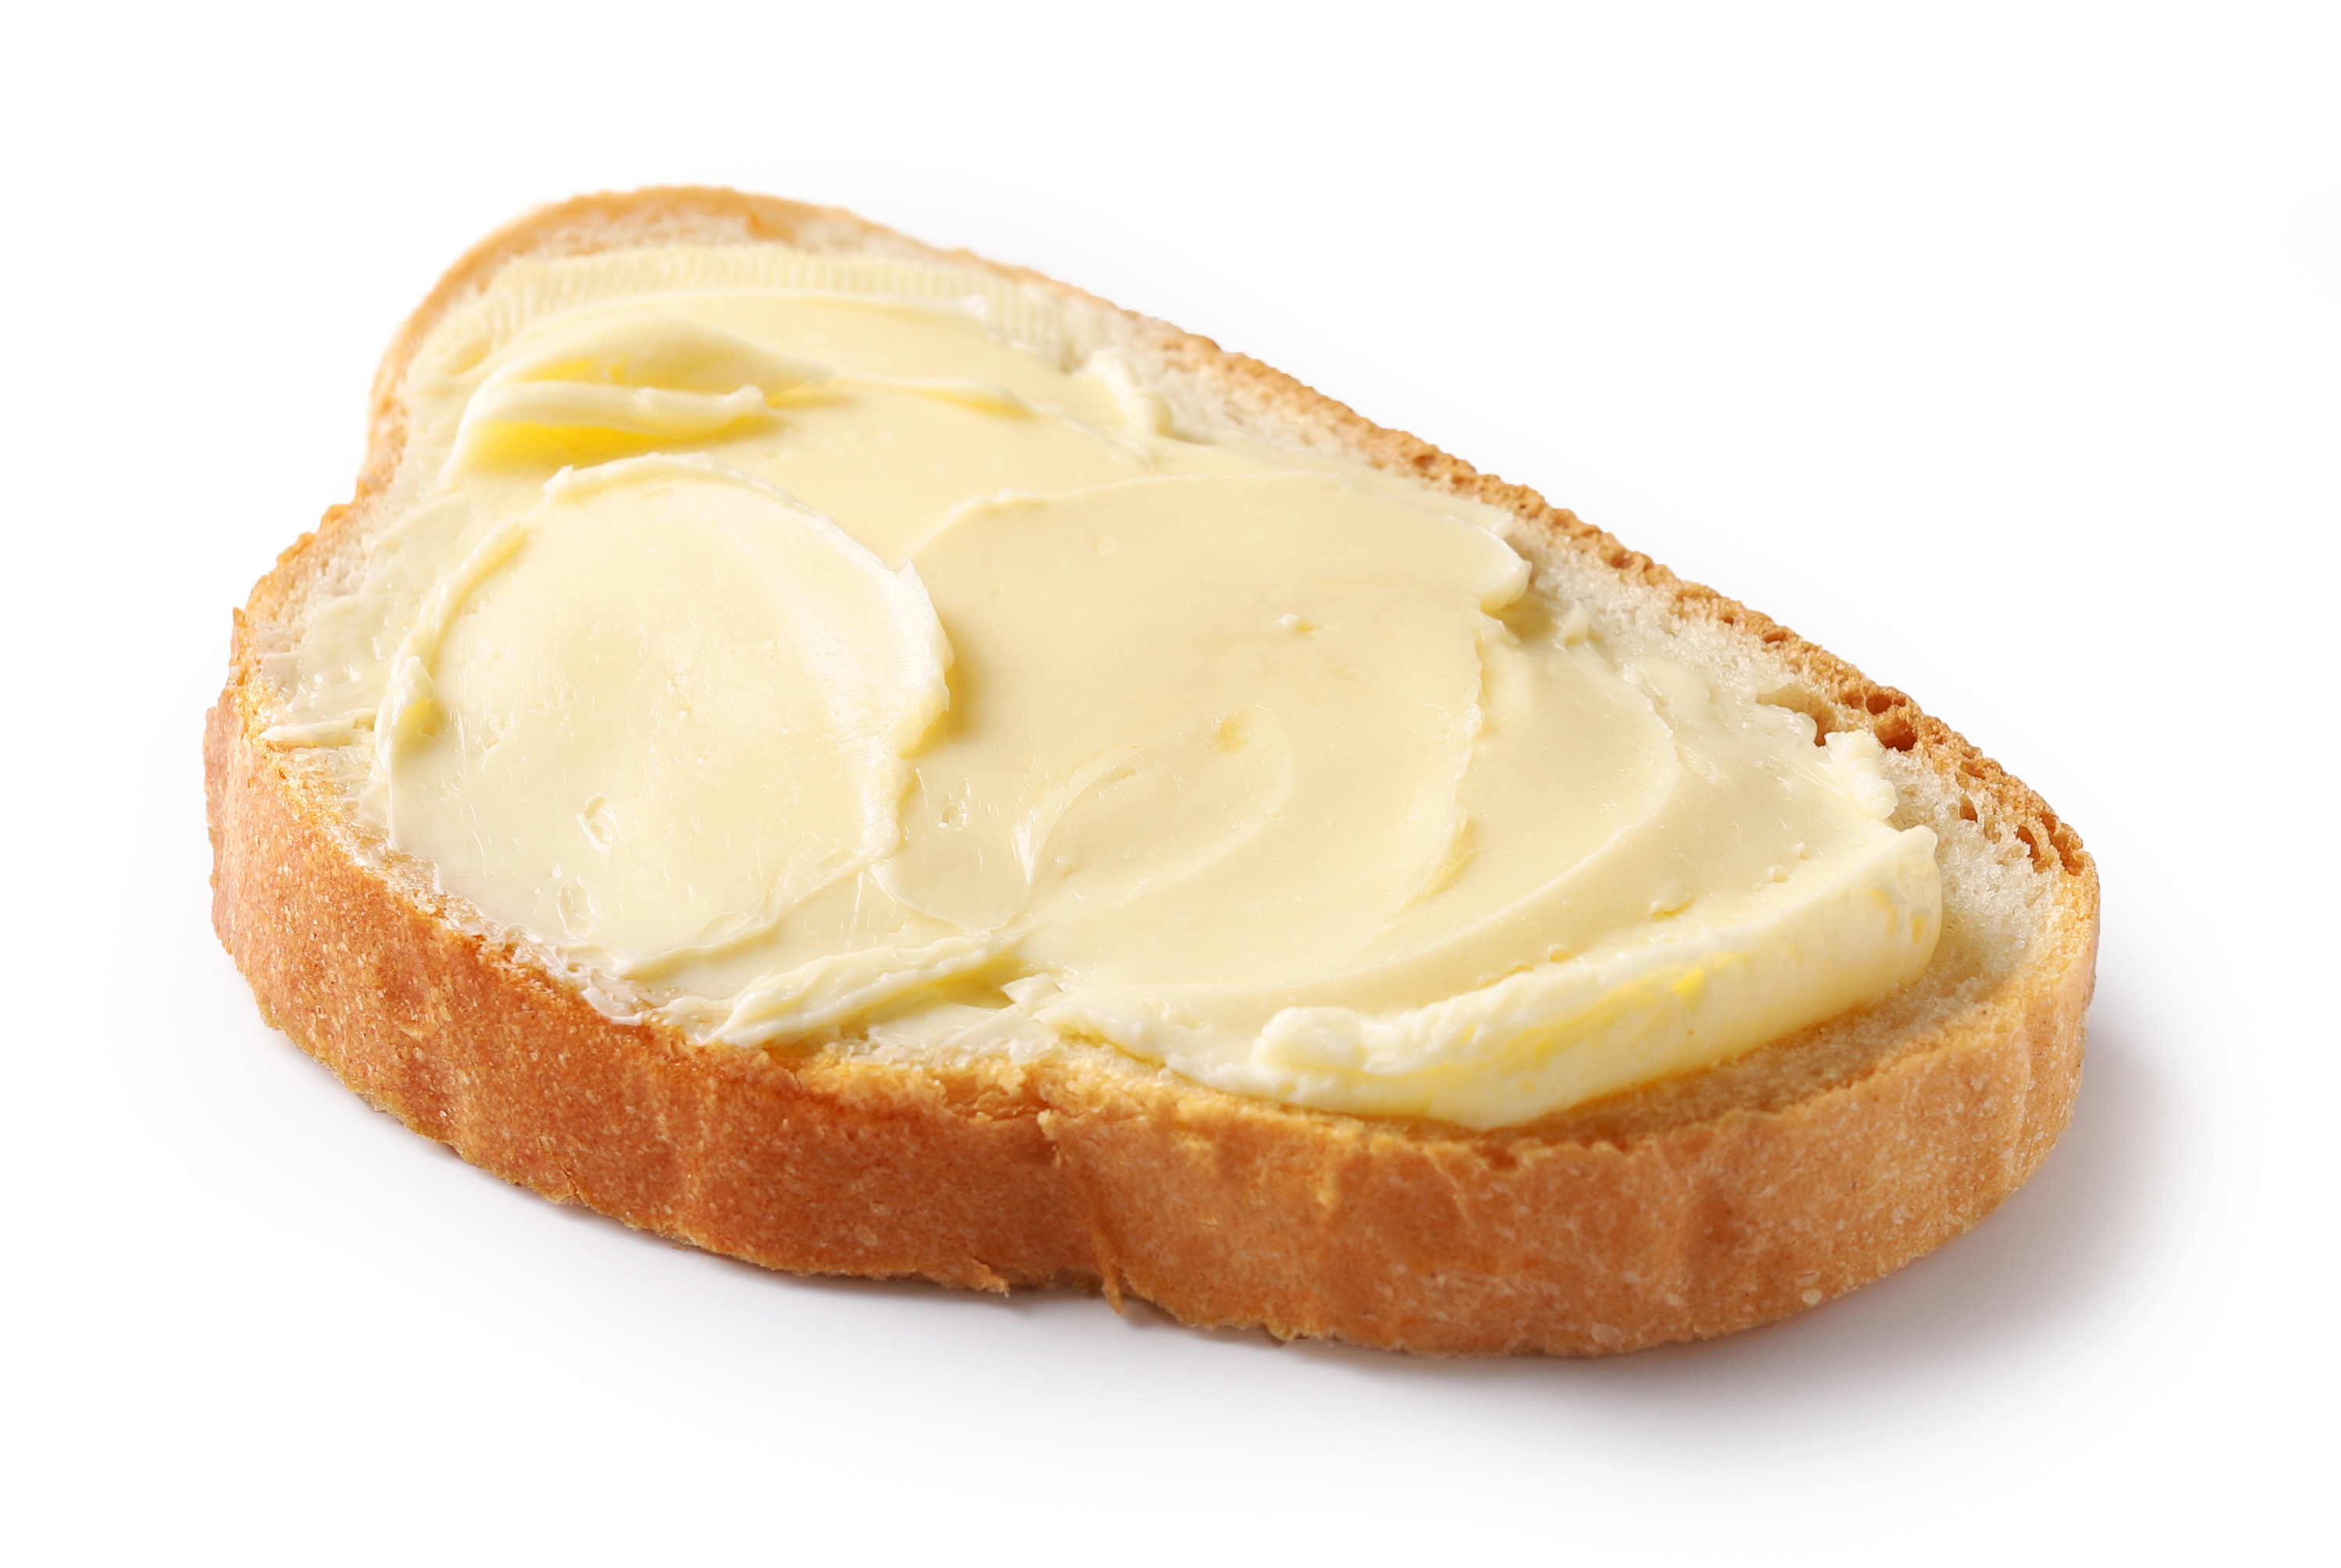 Margarine Spread On Bread